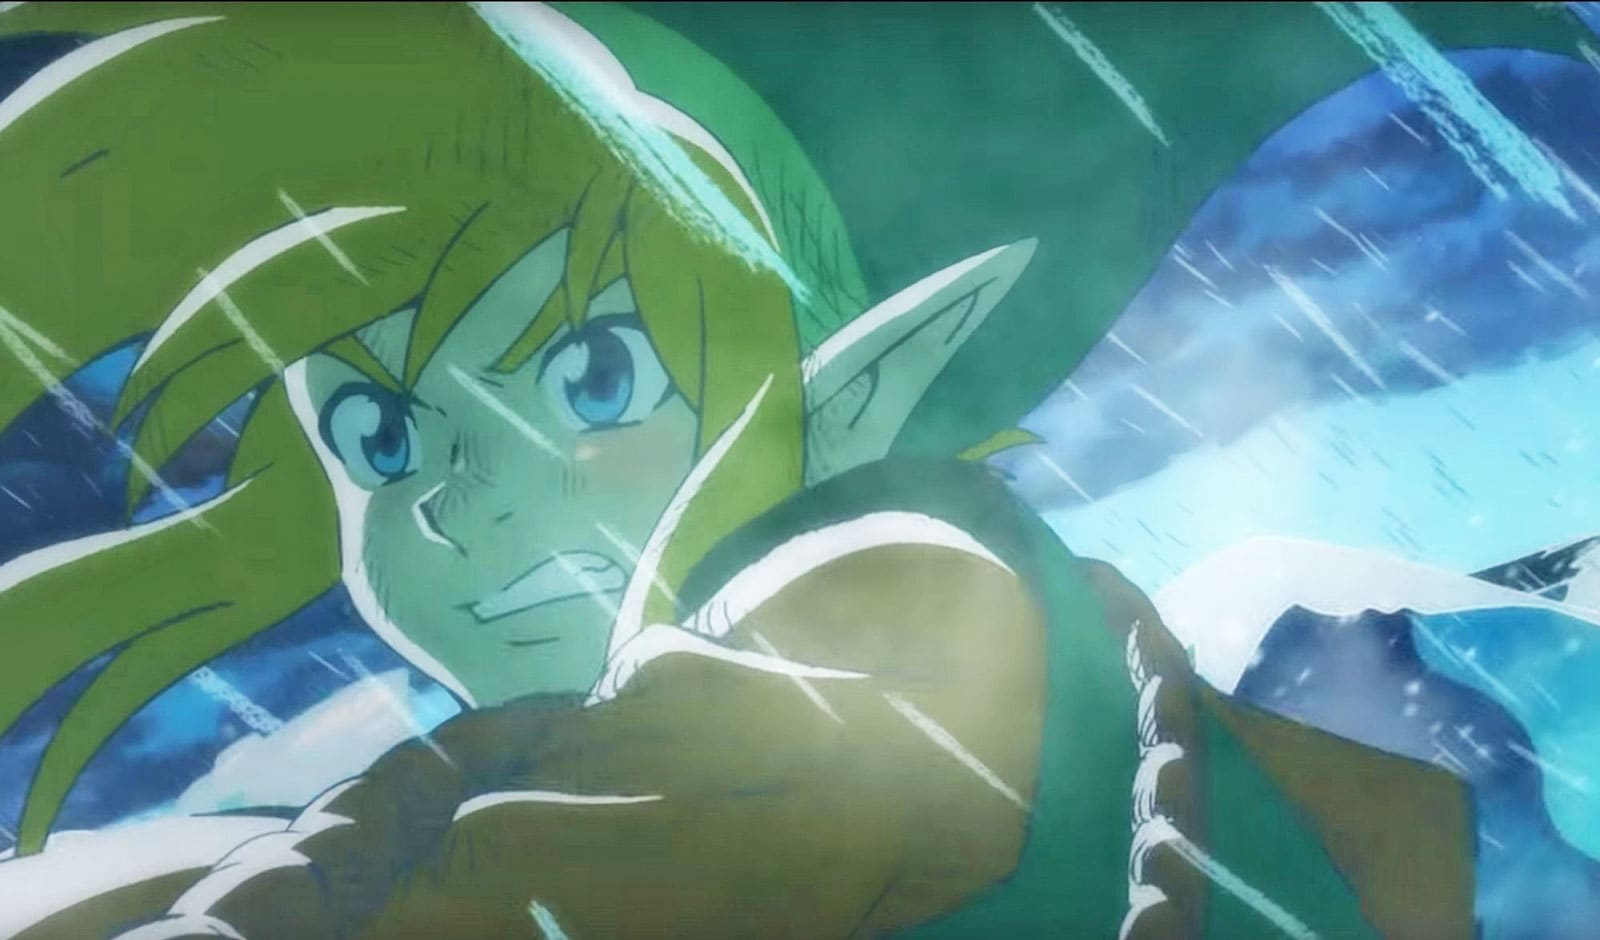 The 'Link's Awakening' remake could be the start of something special